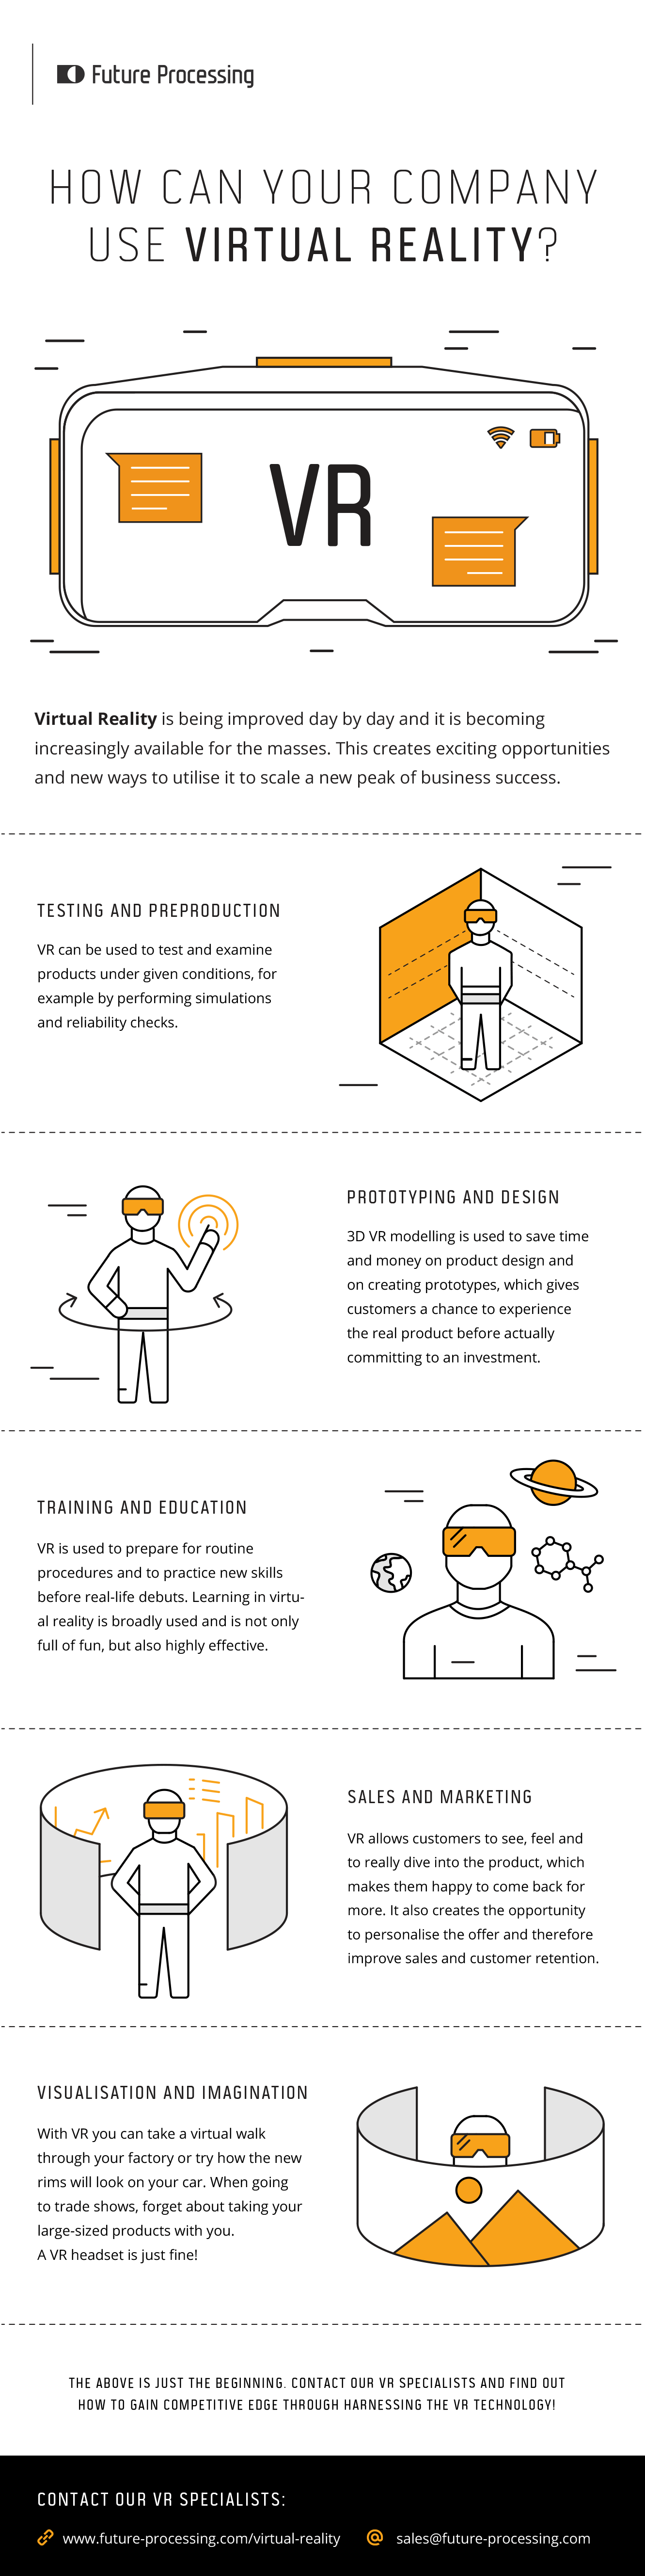 VR infographic